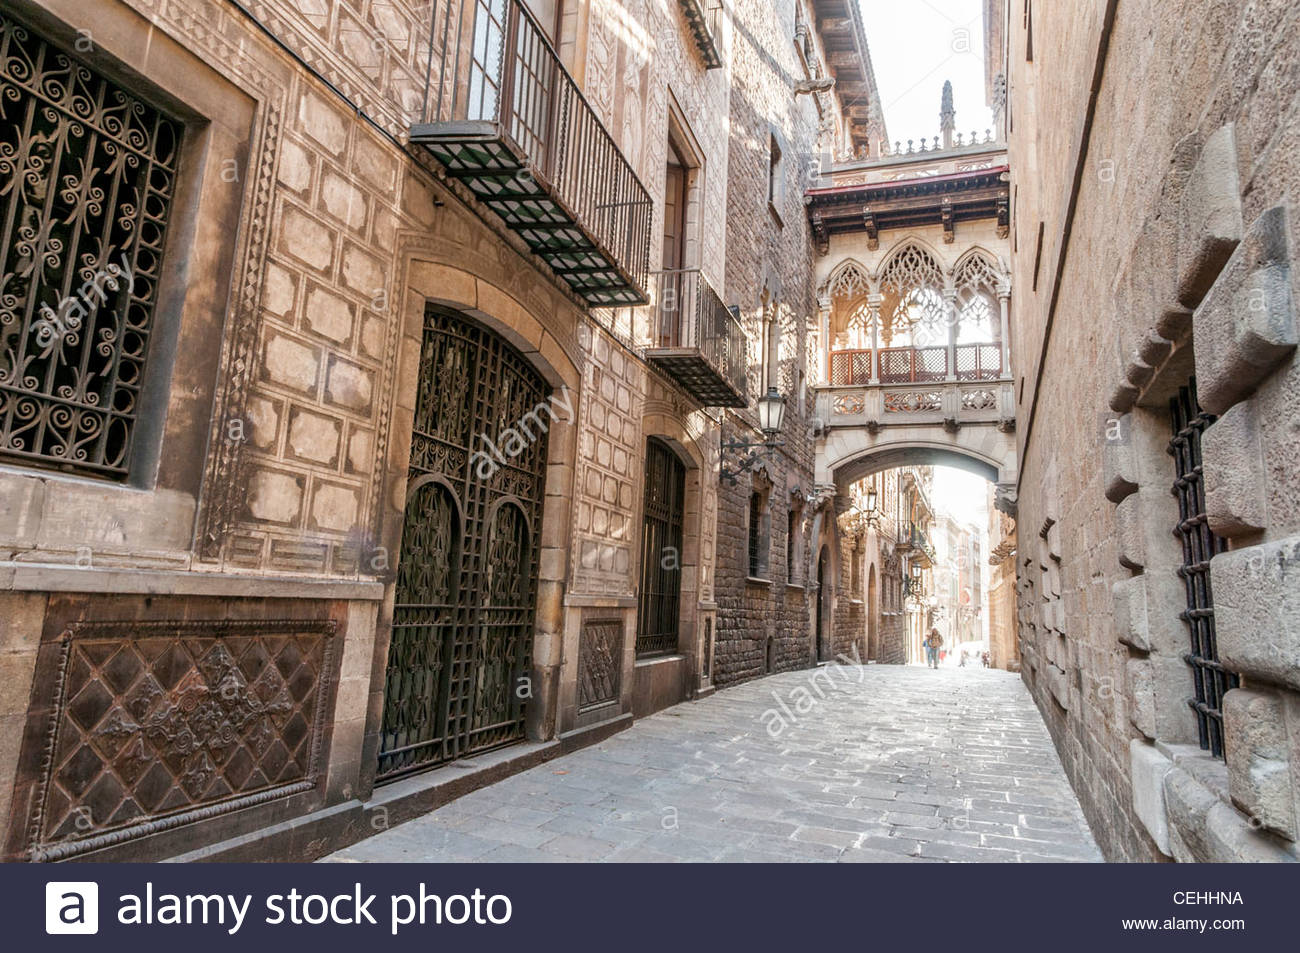 The bridge on Carrer del Bisbe in the Barri Gotic, Barcelona, Spain - Stock Image